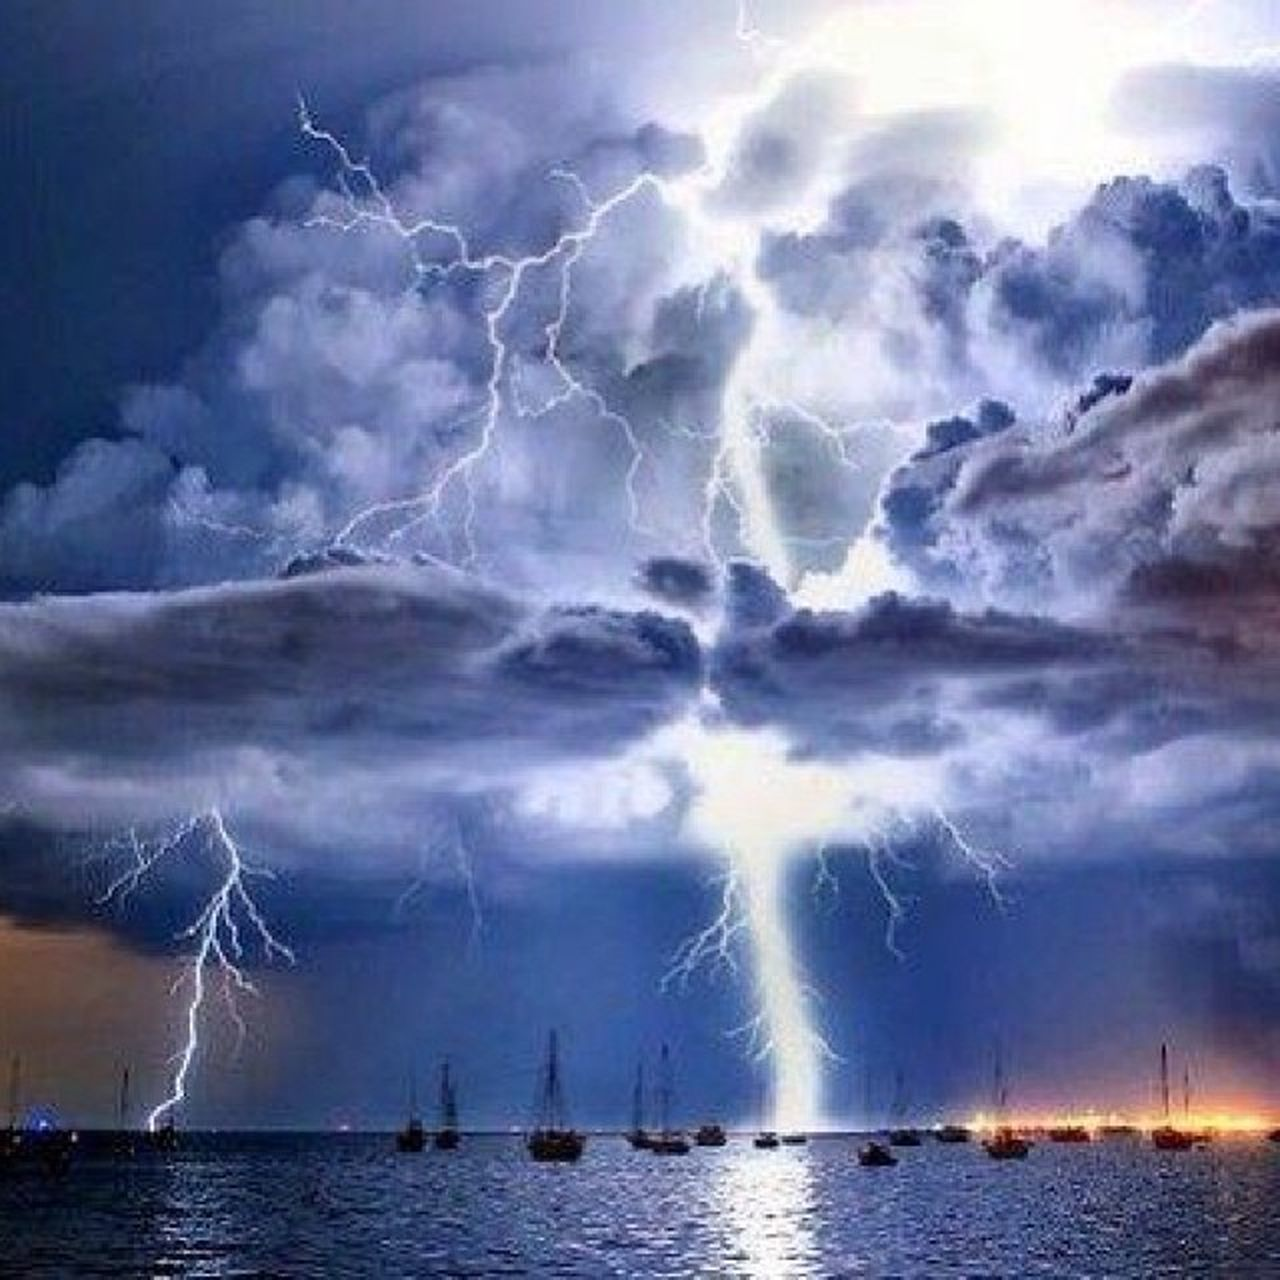 cloud - sky, lightning, power in nature, thunderstorm, water, danger, outdoors, sea, nature, forked lightning, night, sky, no people, storm cloud, nautical vessel, scenics, beauty in nature, horizon over water, cyclone